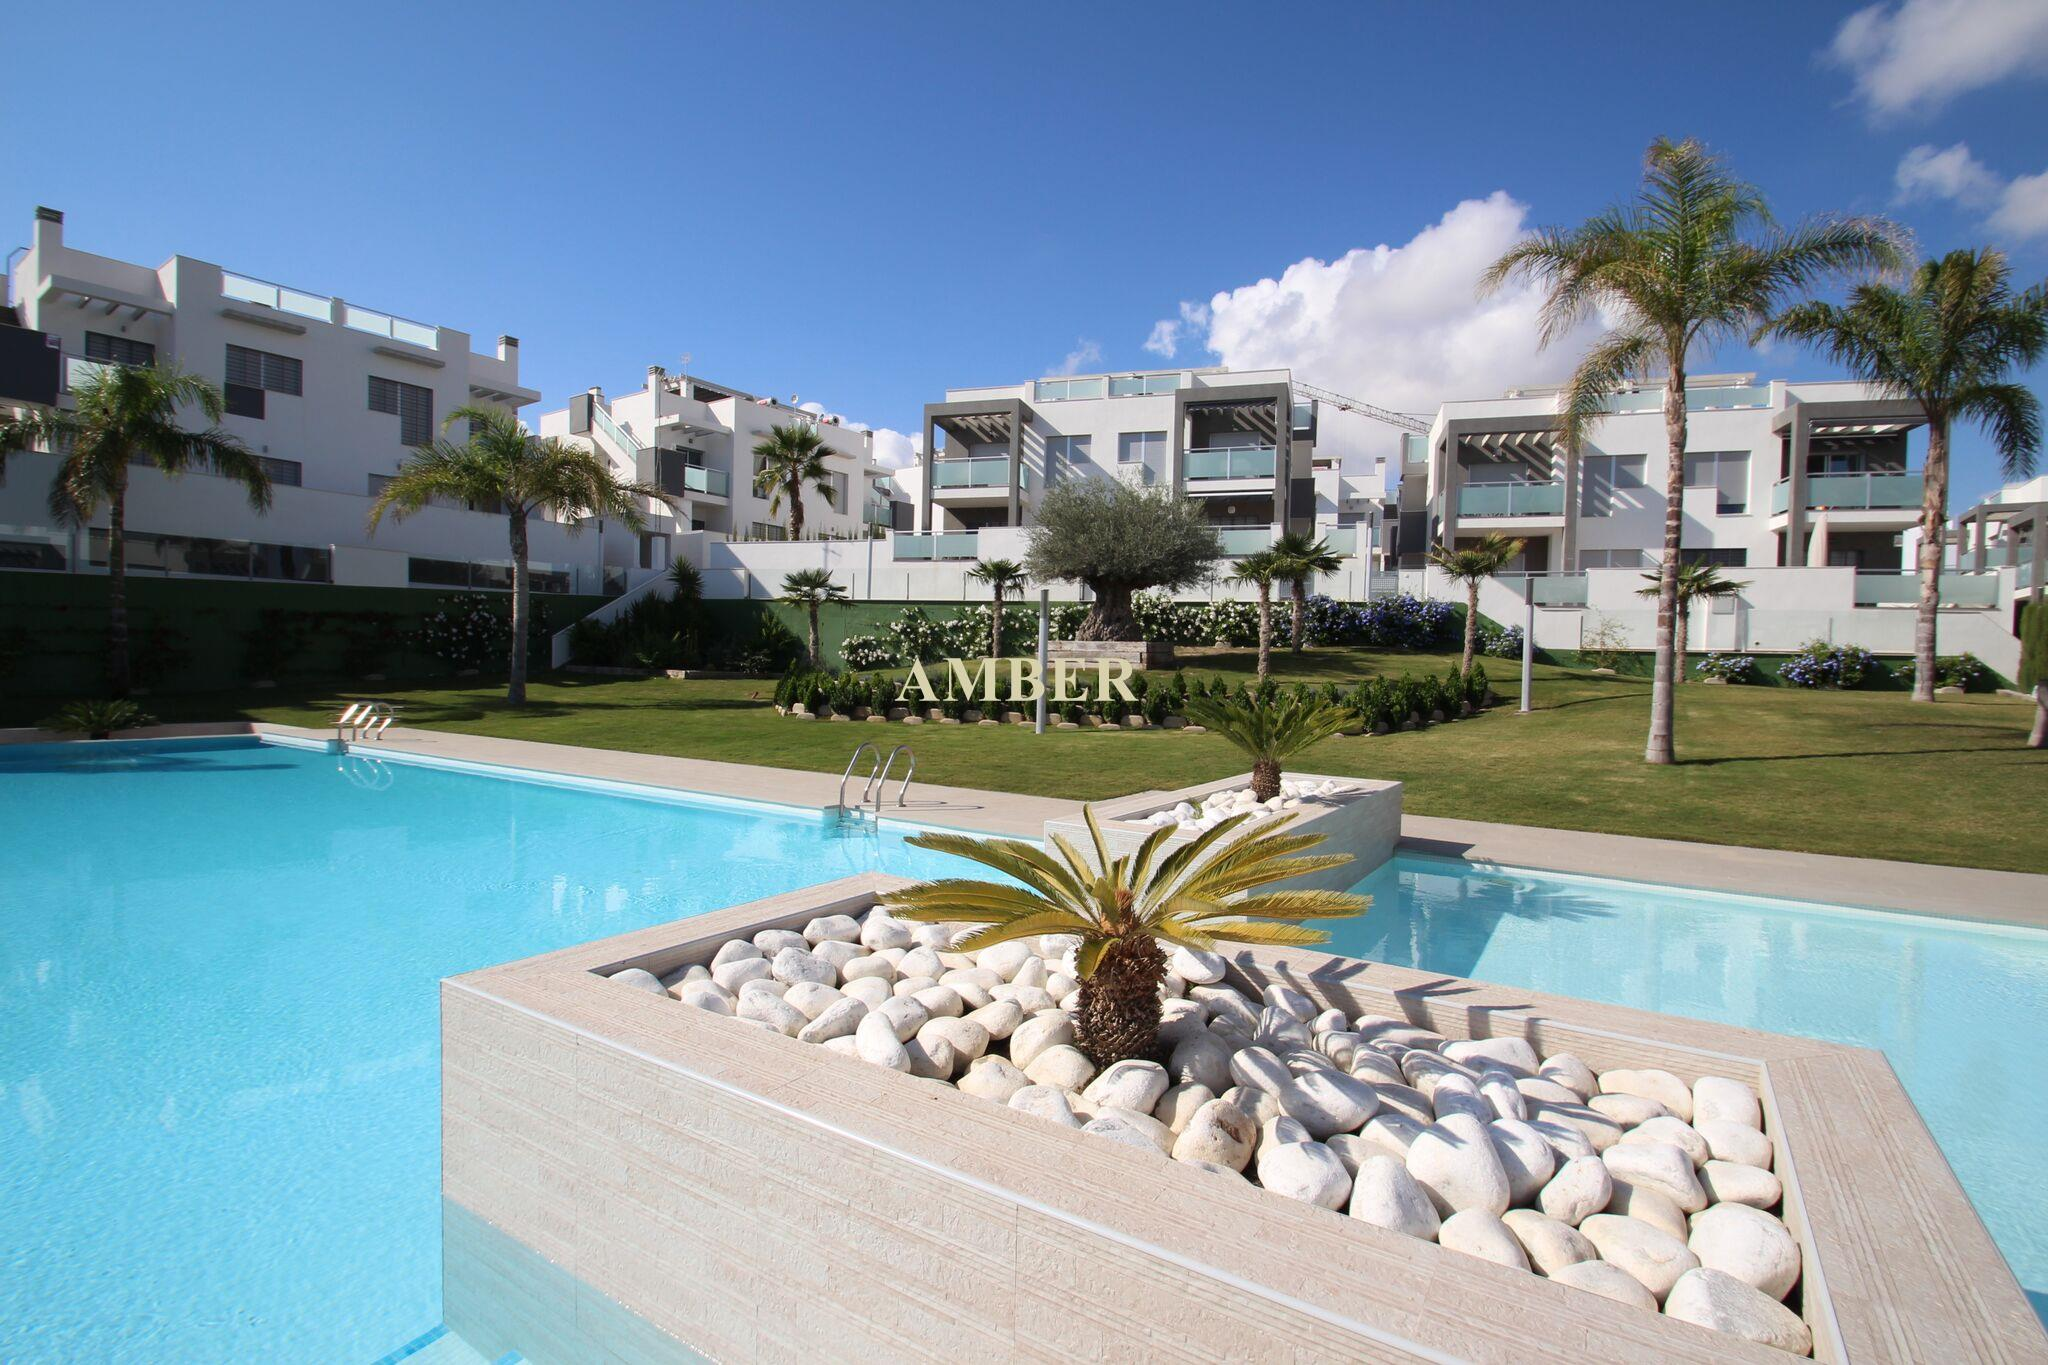 New Build Bungalows for sale in Los Balcones, Torrevieja